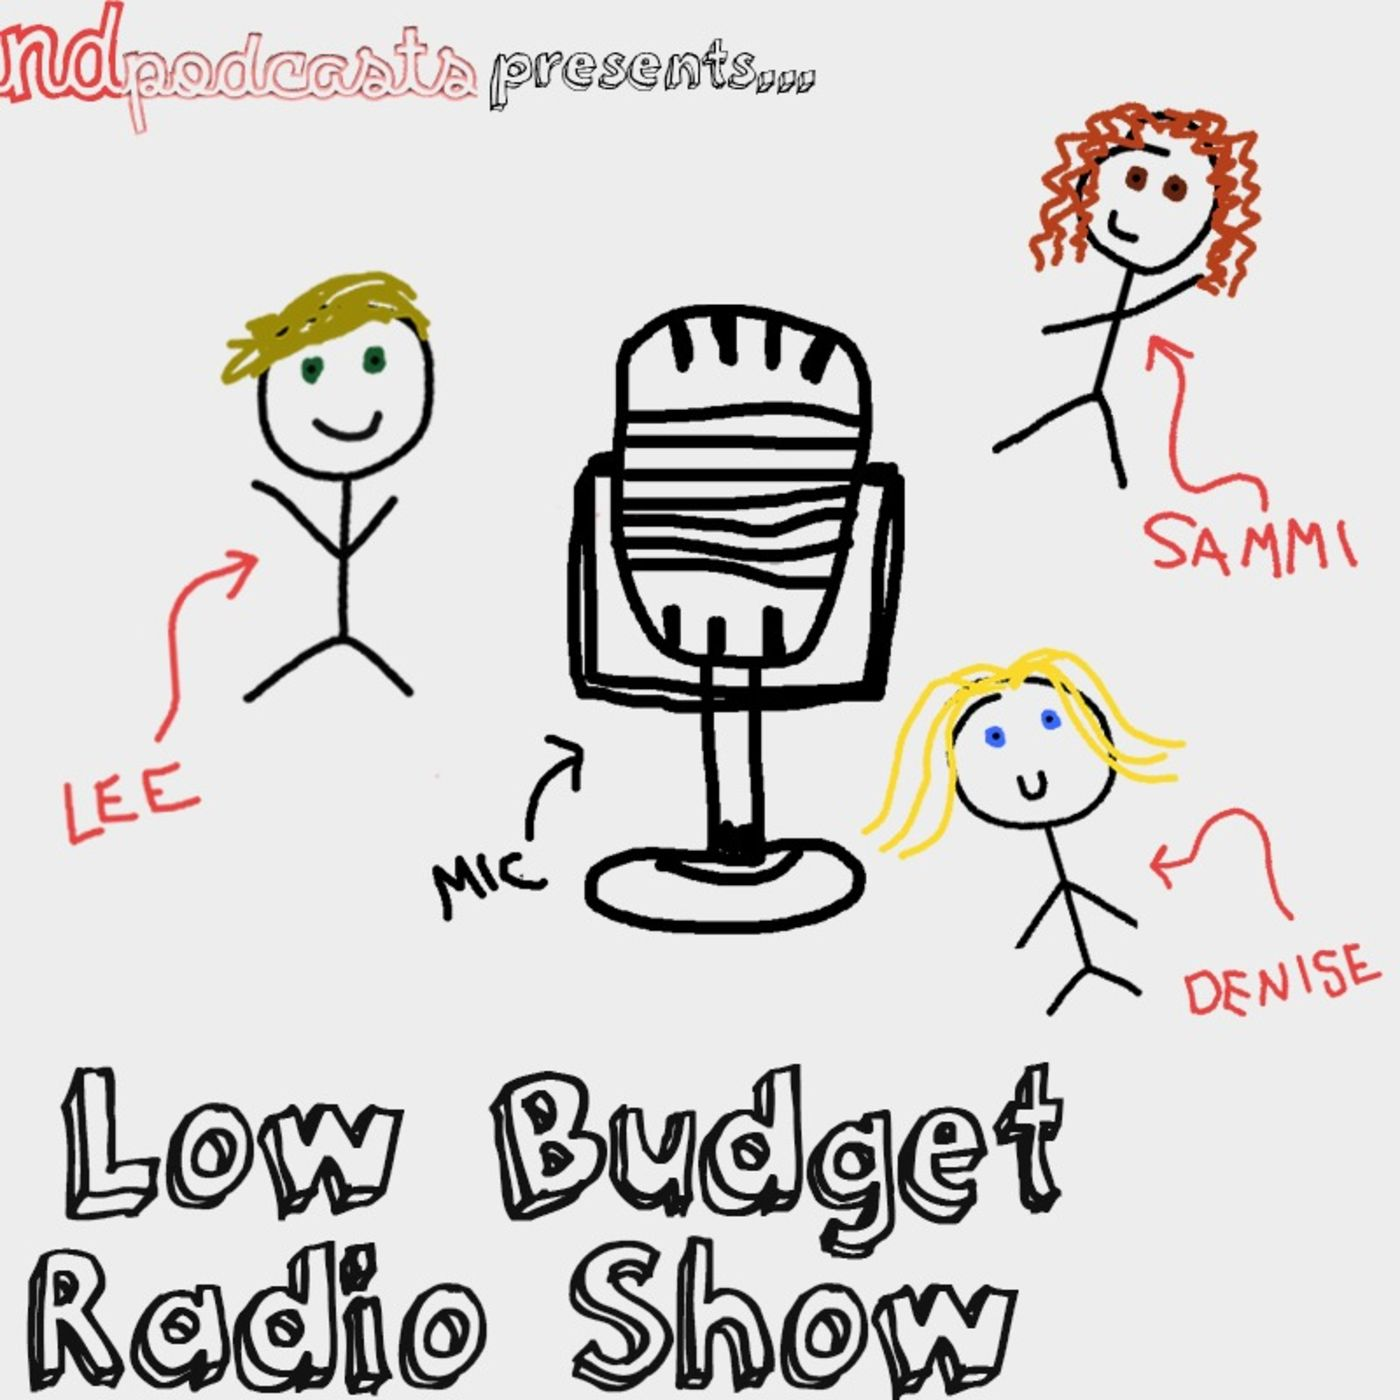 Disaster Popstartist - Low Budget Radio Show Ep. 11